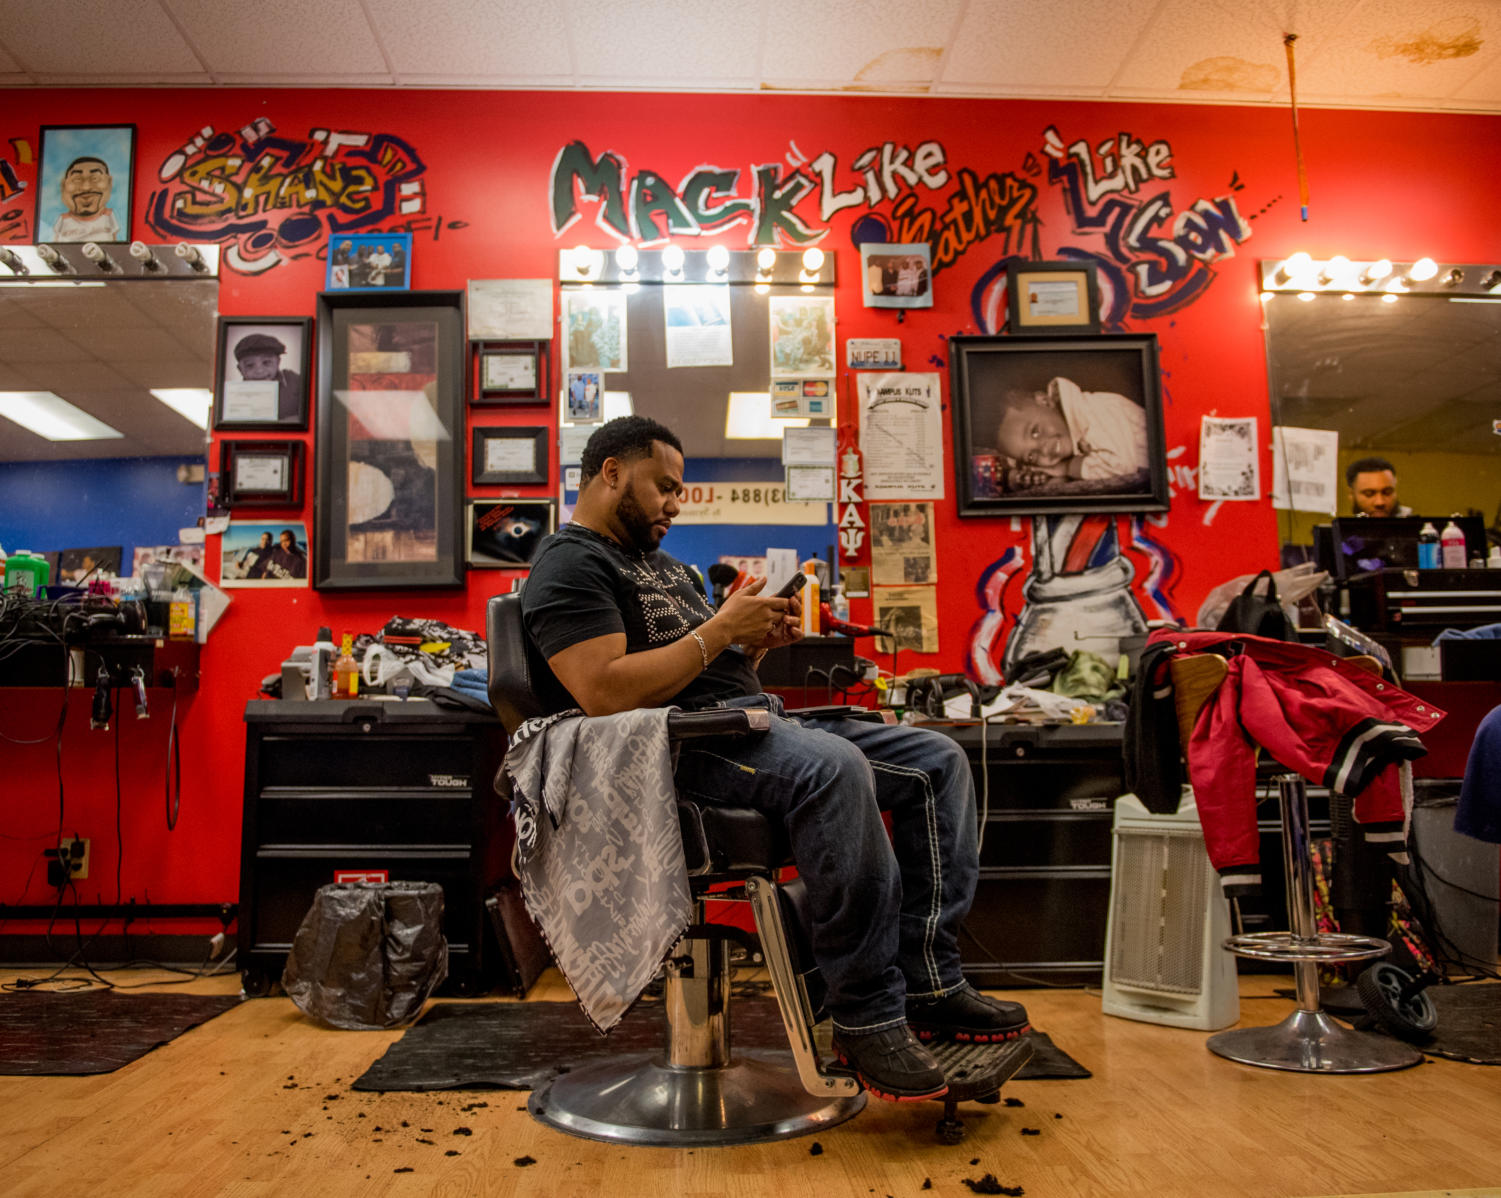 Moshe Anderson, Kampus Kuts shop owner/ waits for customers Monday, Jan. 30, 2018, at Kampus Kuts in Carbondale.